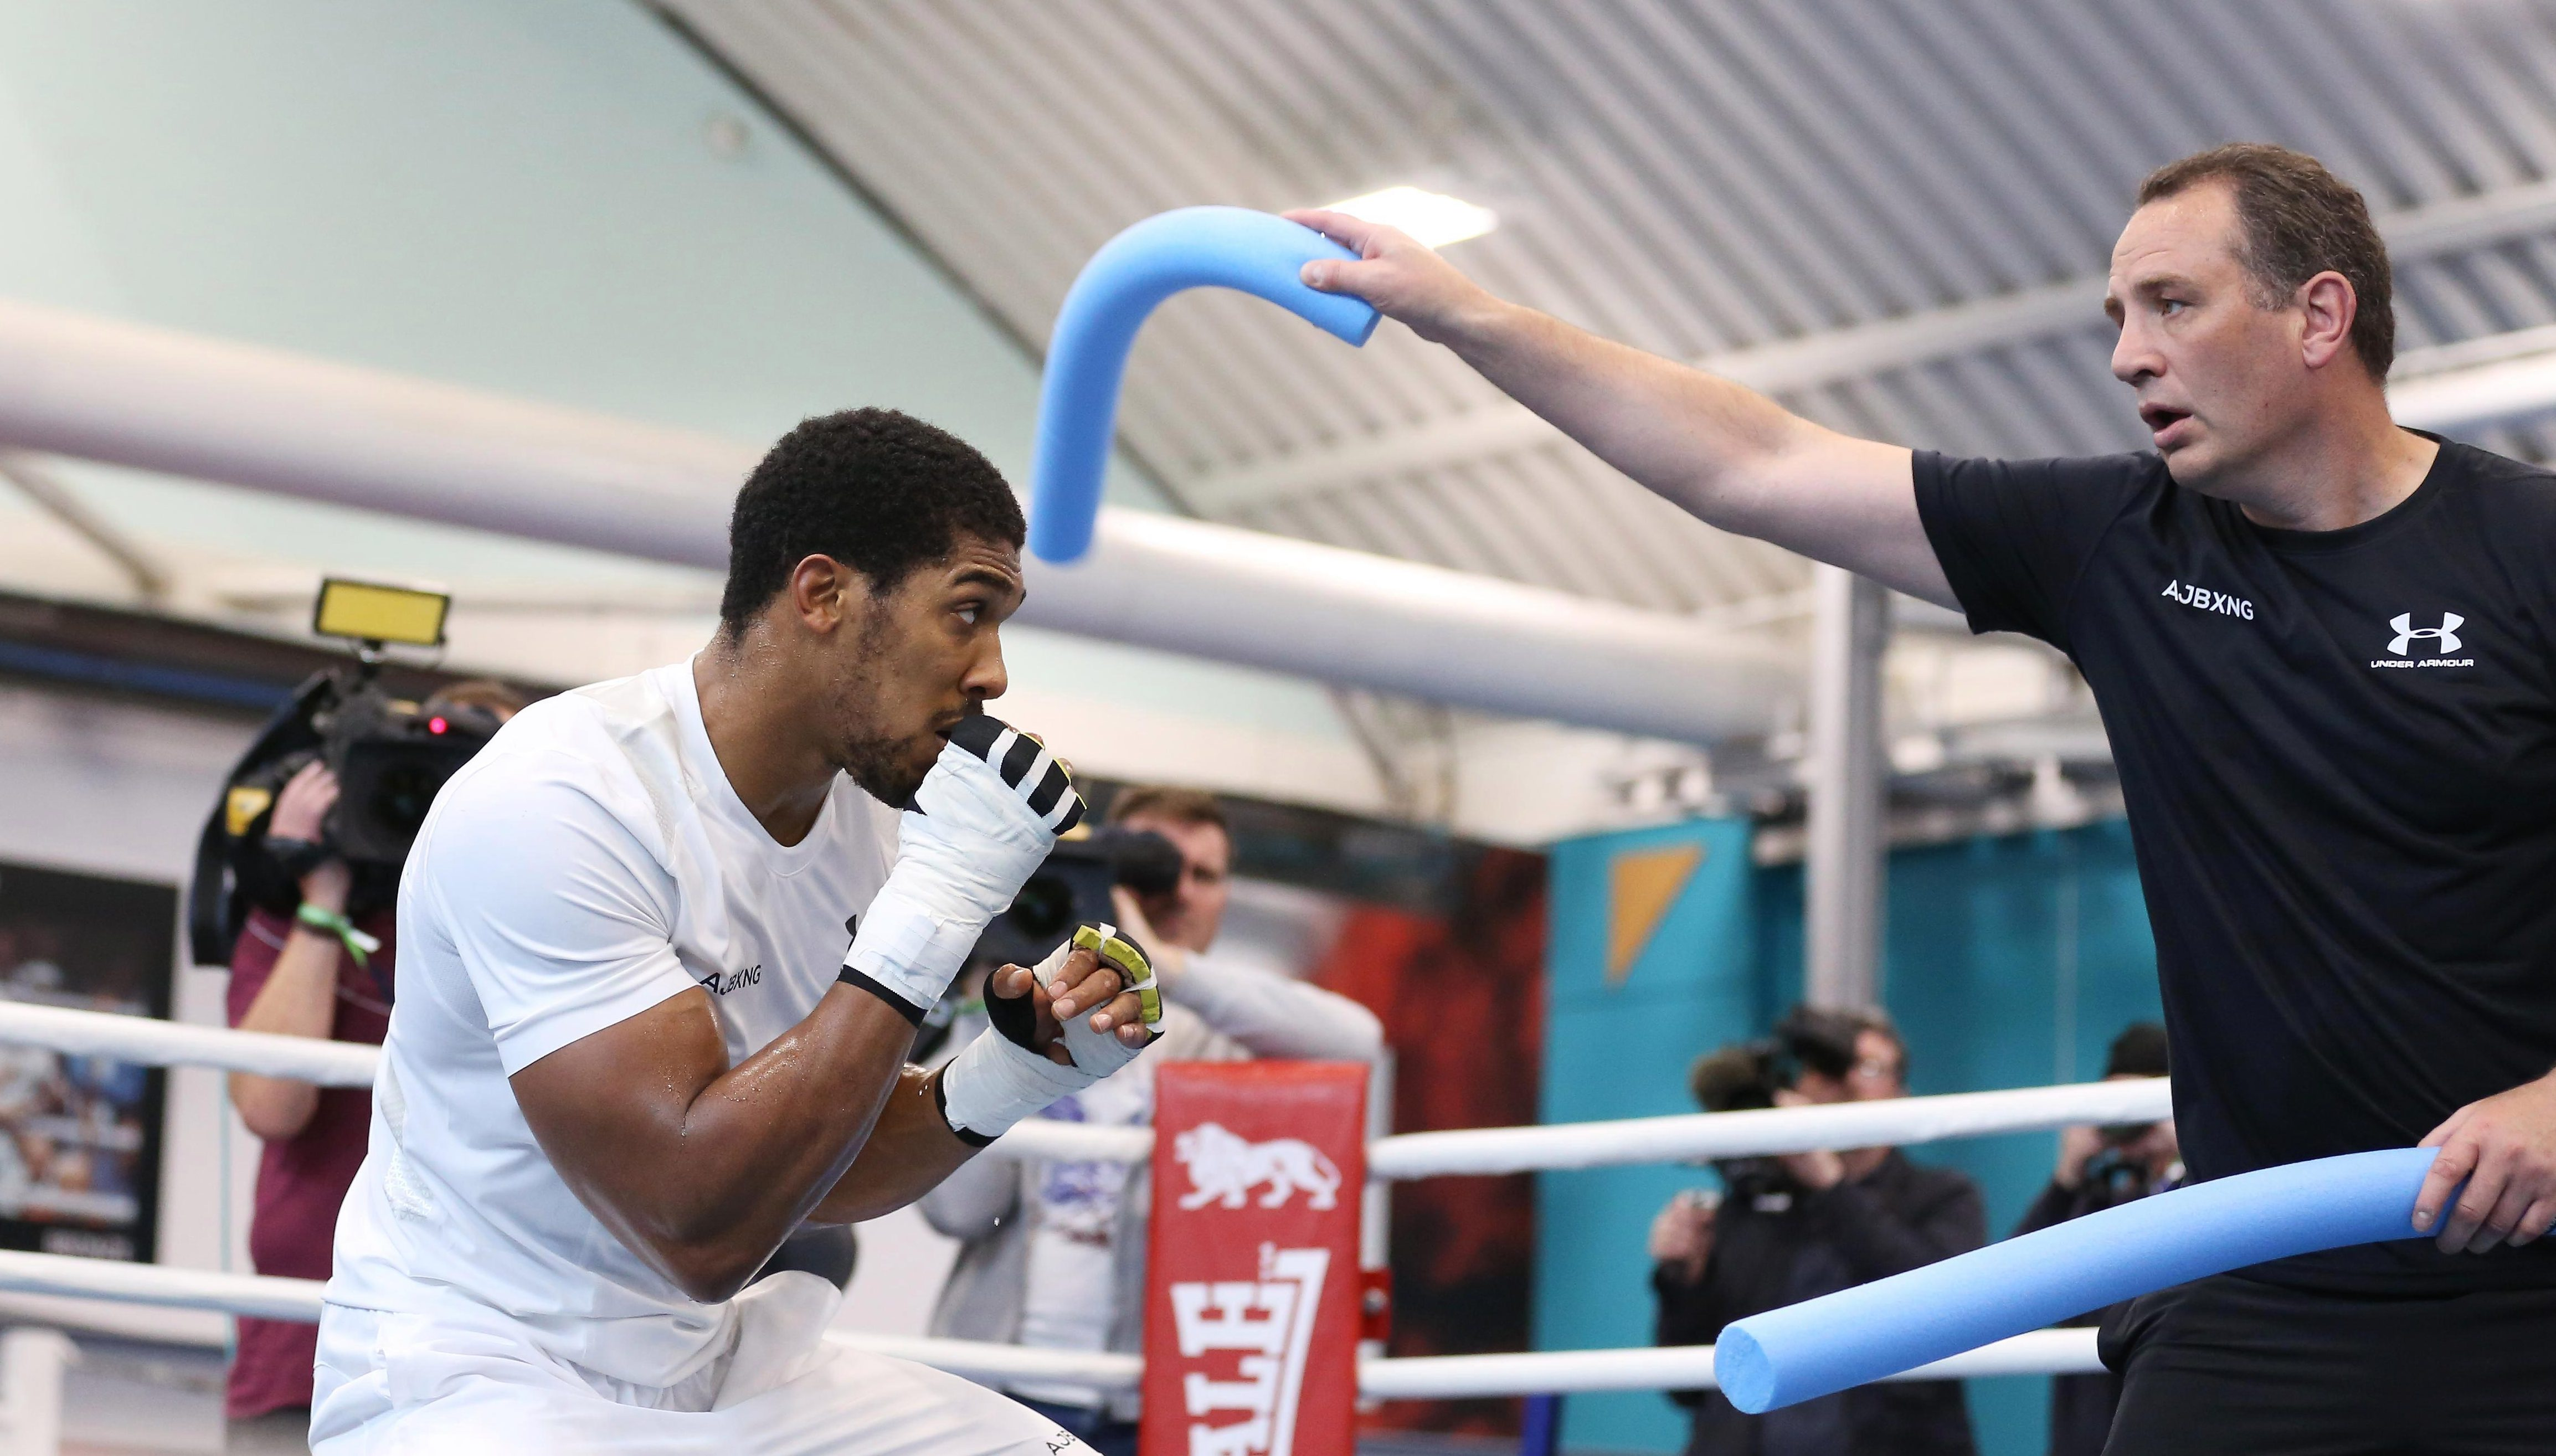 Joshua bobs and weave at a training session in Sheffield on Wednesday